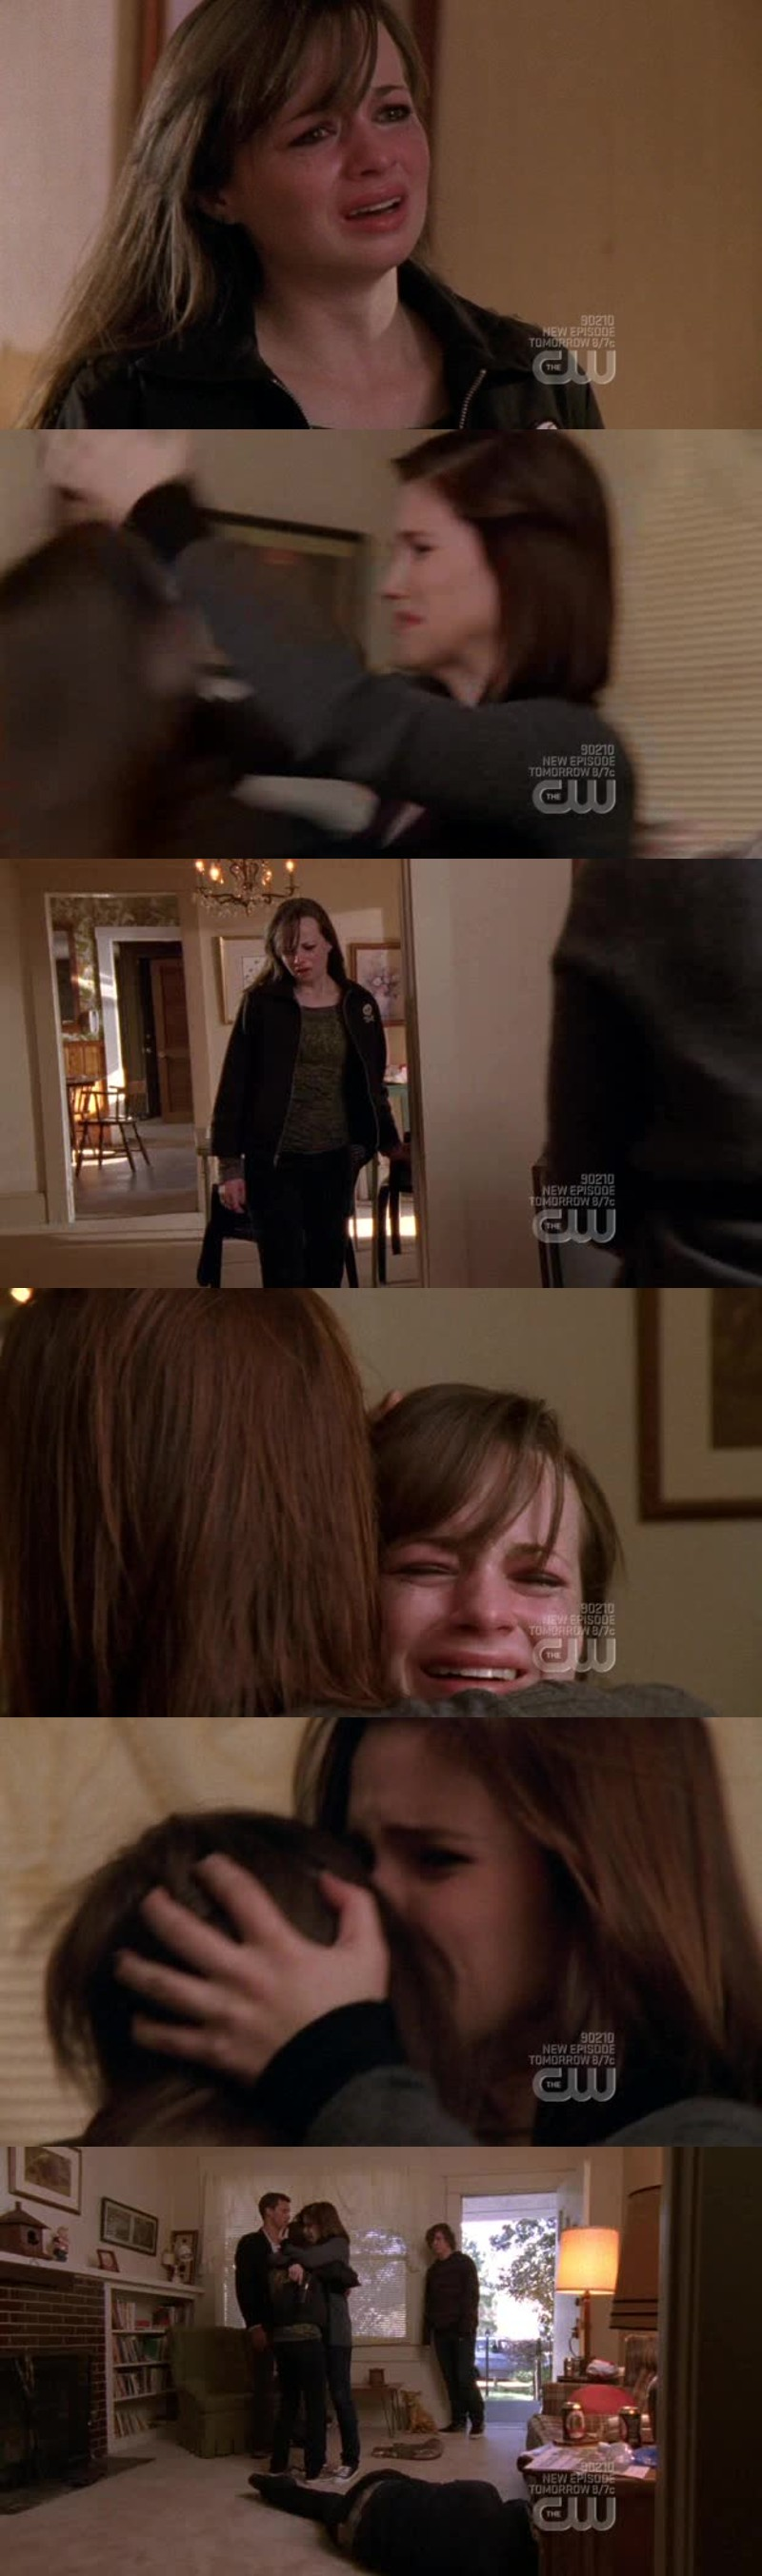 """I need you, mom."" wELL EXCUSE ME WHILE I CRY FOR THE REST OF MY LIFE"